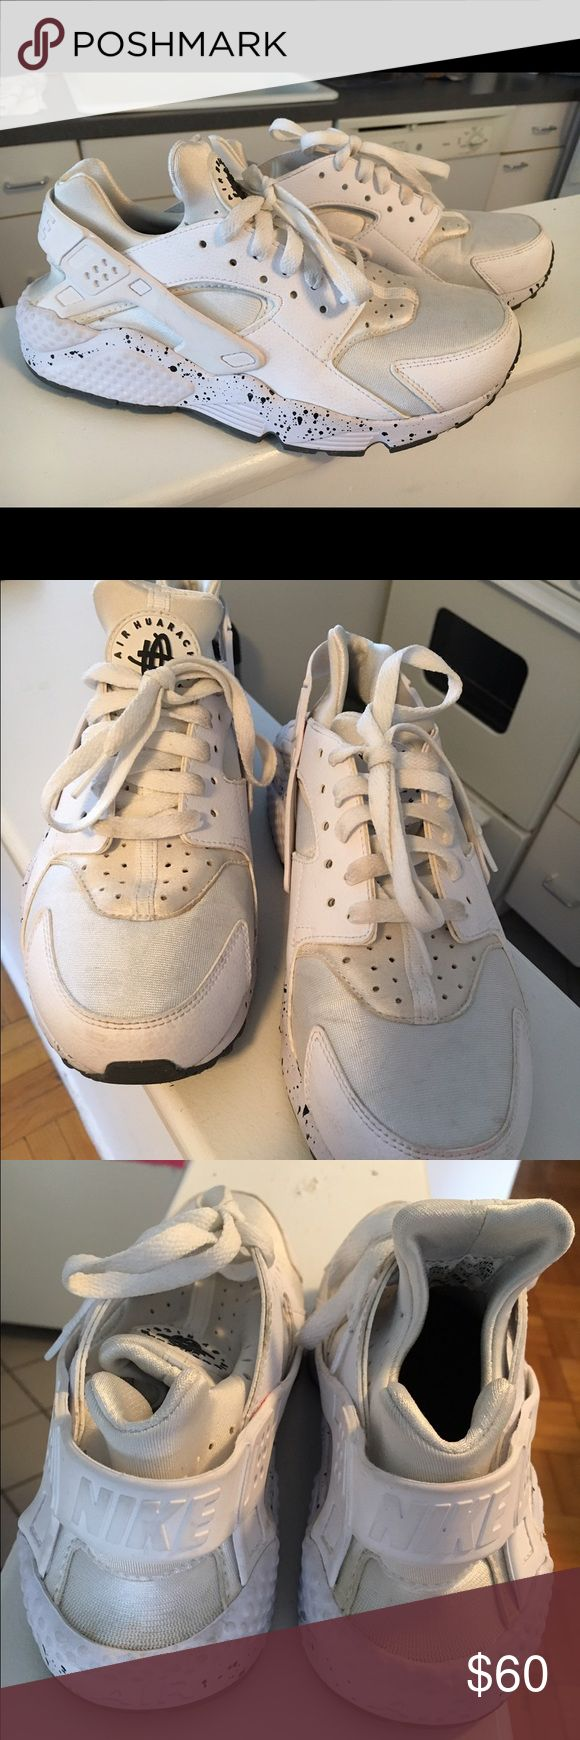 Nike Air Huaraches (Women's) Nike Air Huarache Premium ID. All white with speckled sole. Very comfortable and unique. Only worn a few times. Very good condition. Nike Shoes Sneakers